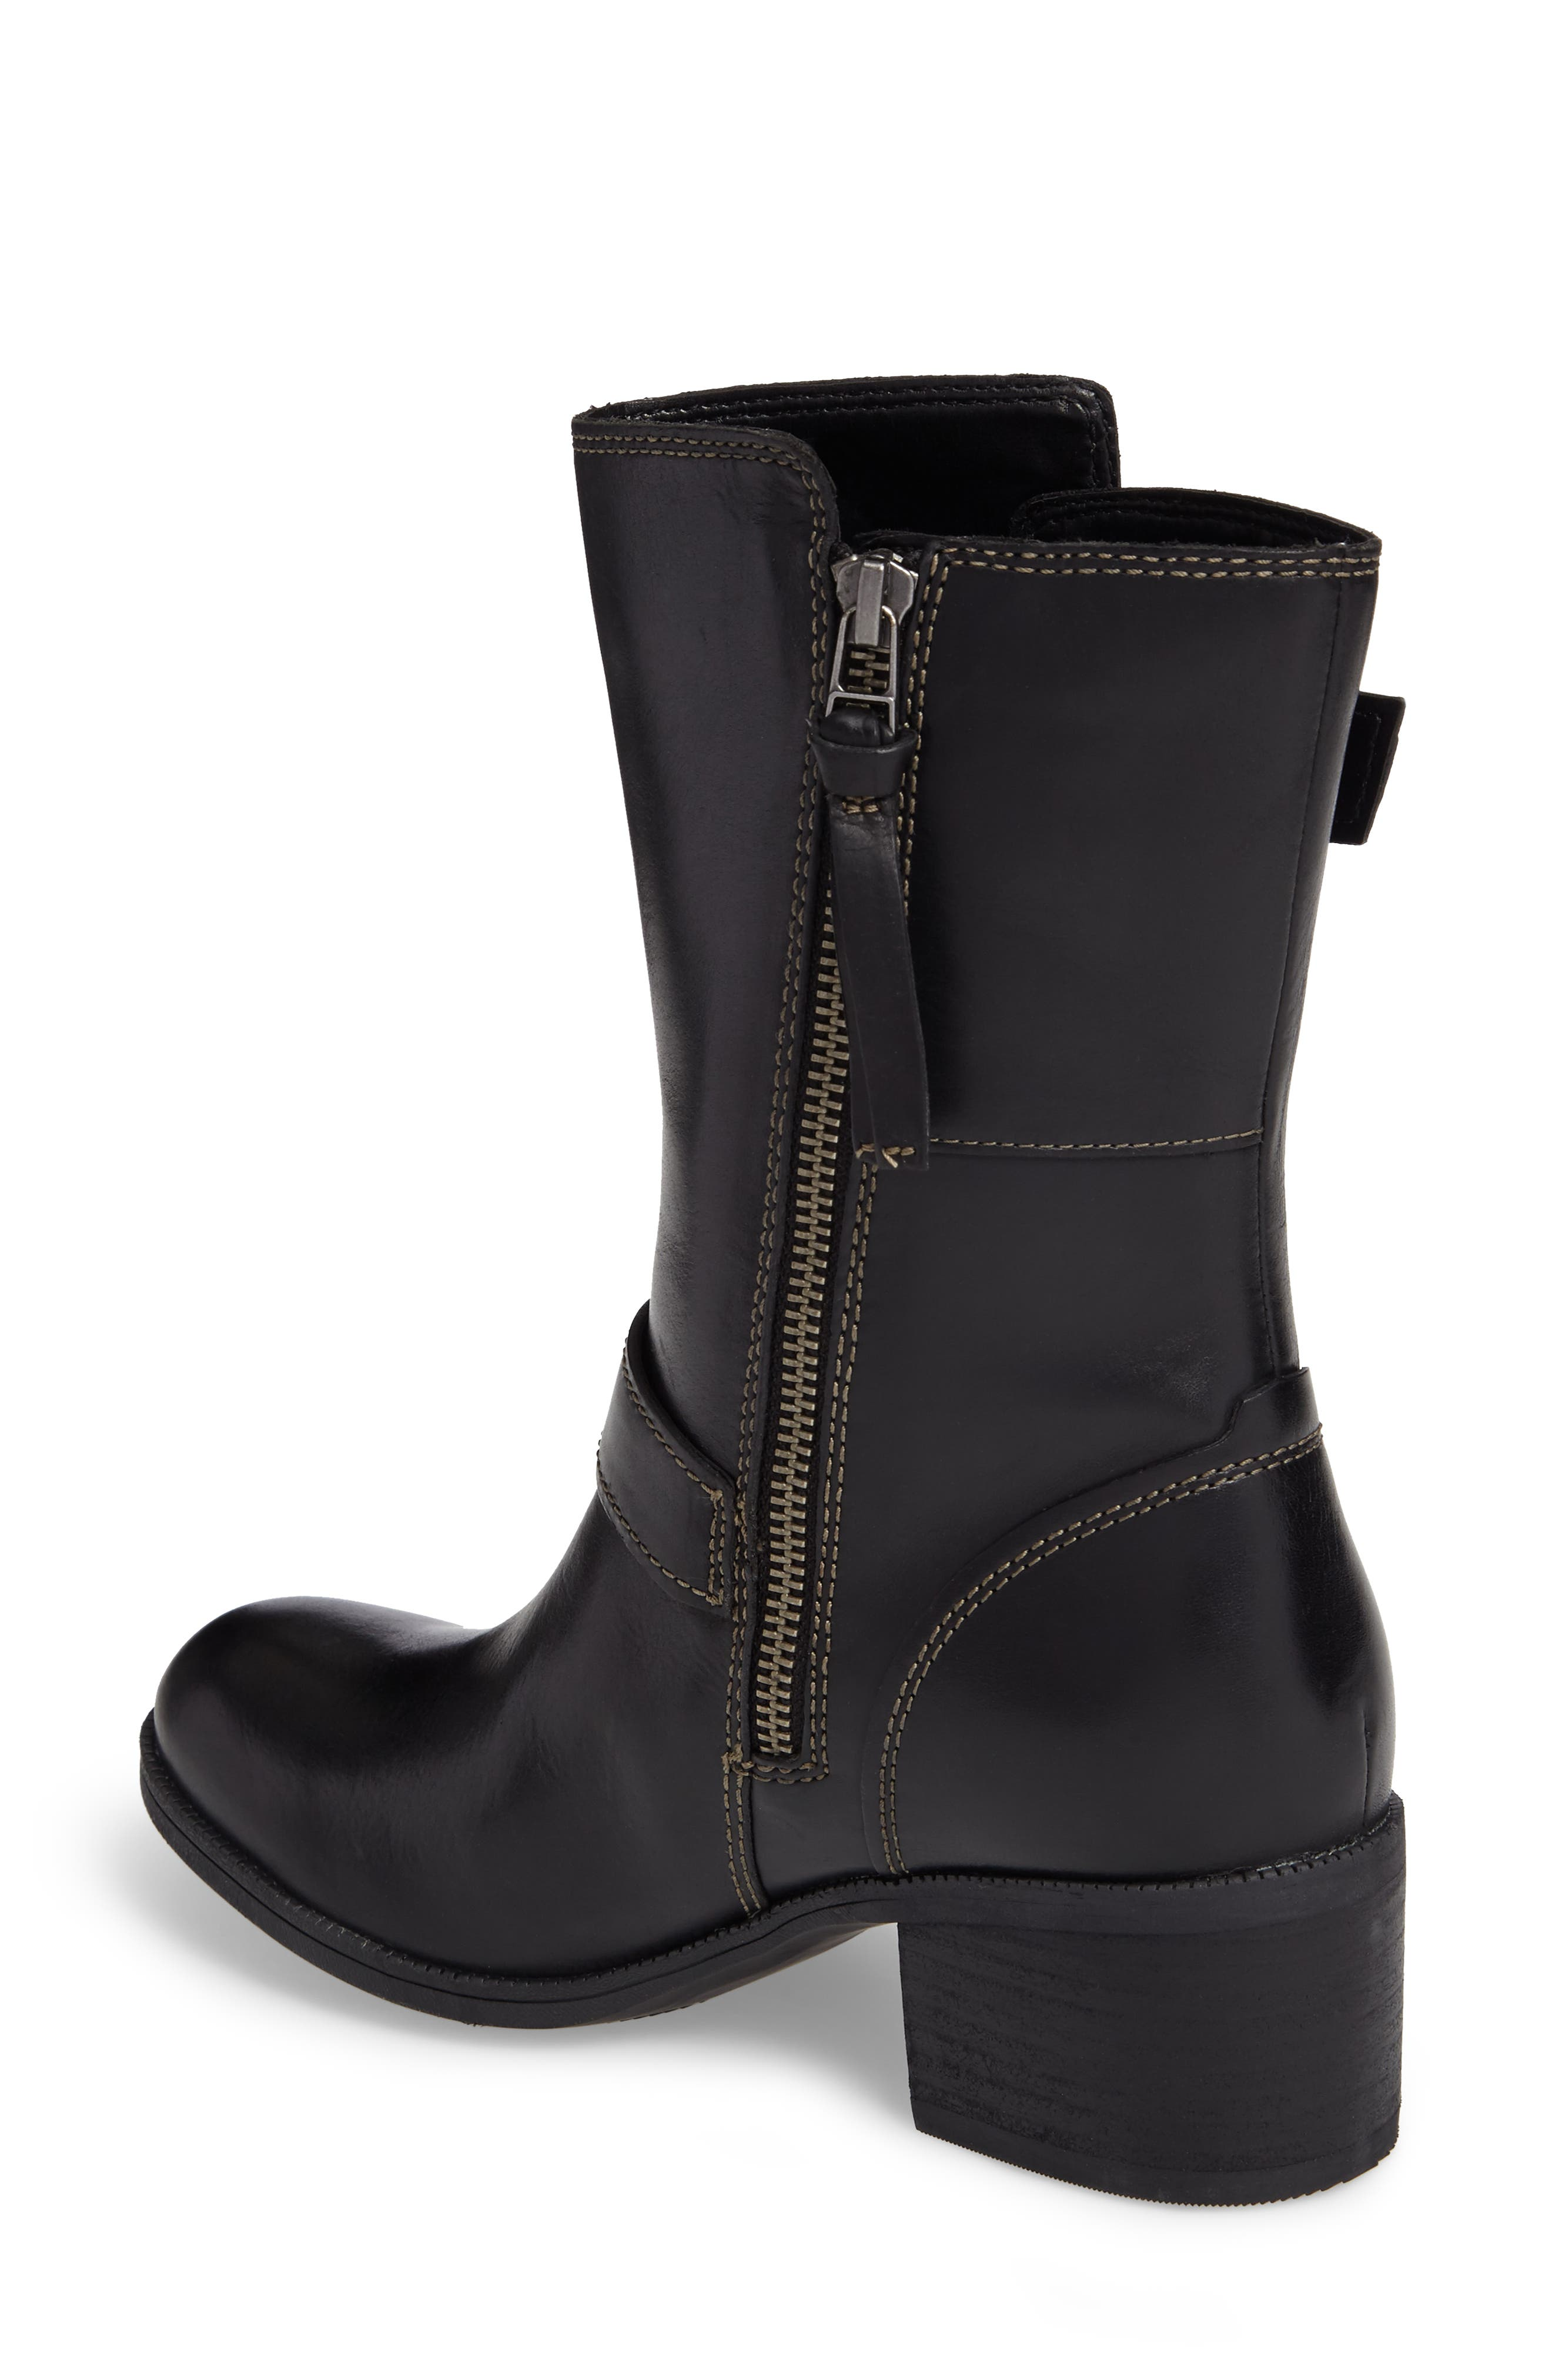 Maypearl Oasis Boot,                             Alternate thumbnail 2, color,                             Black Leather